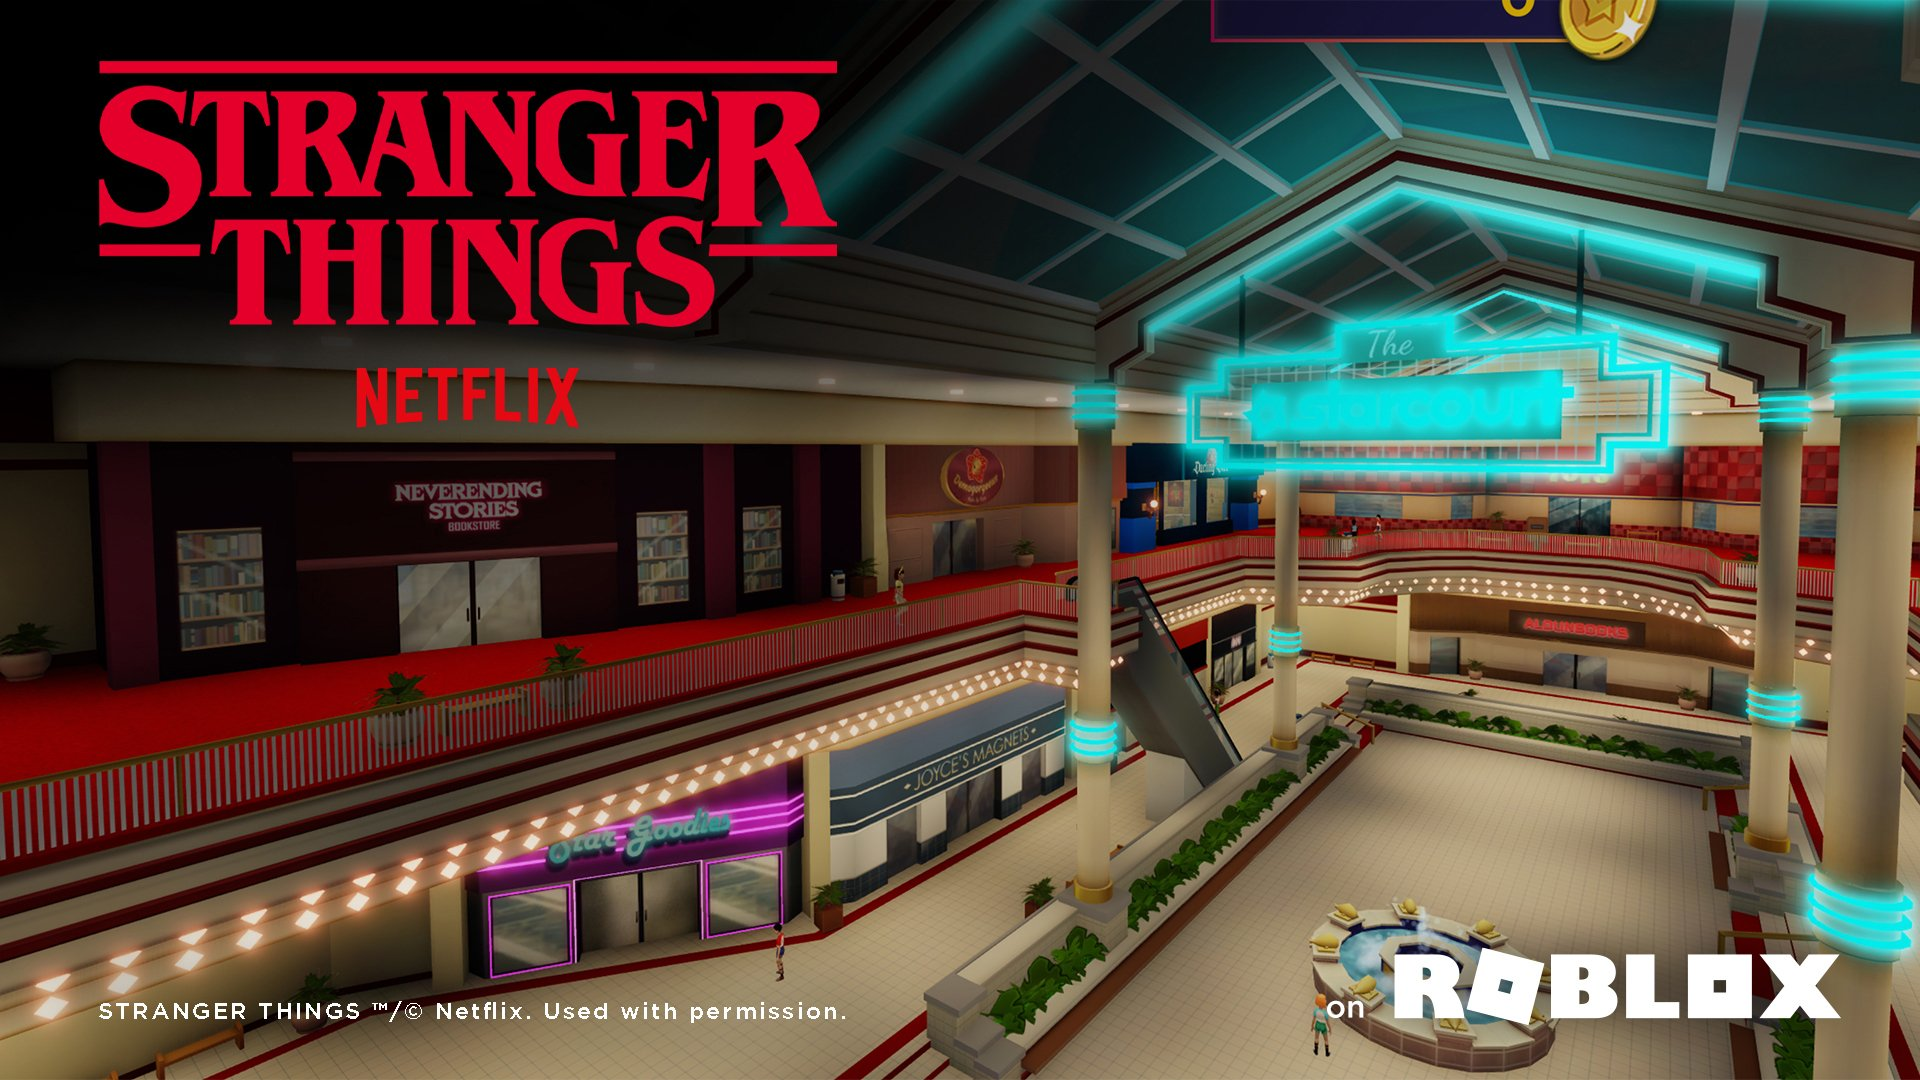 roblox:-a-new-stranger-things-world-lets-fans-explore-starcourt-mall